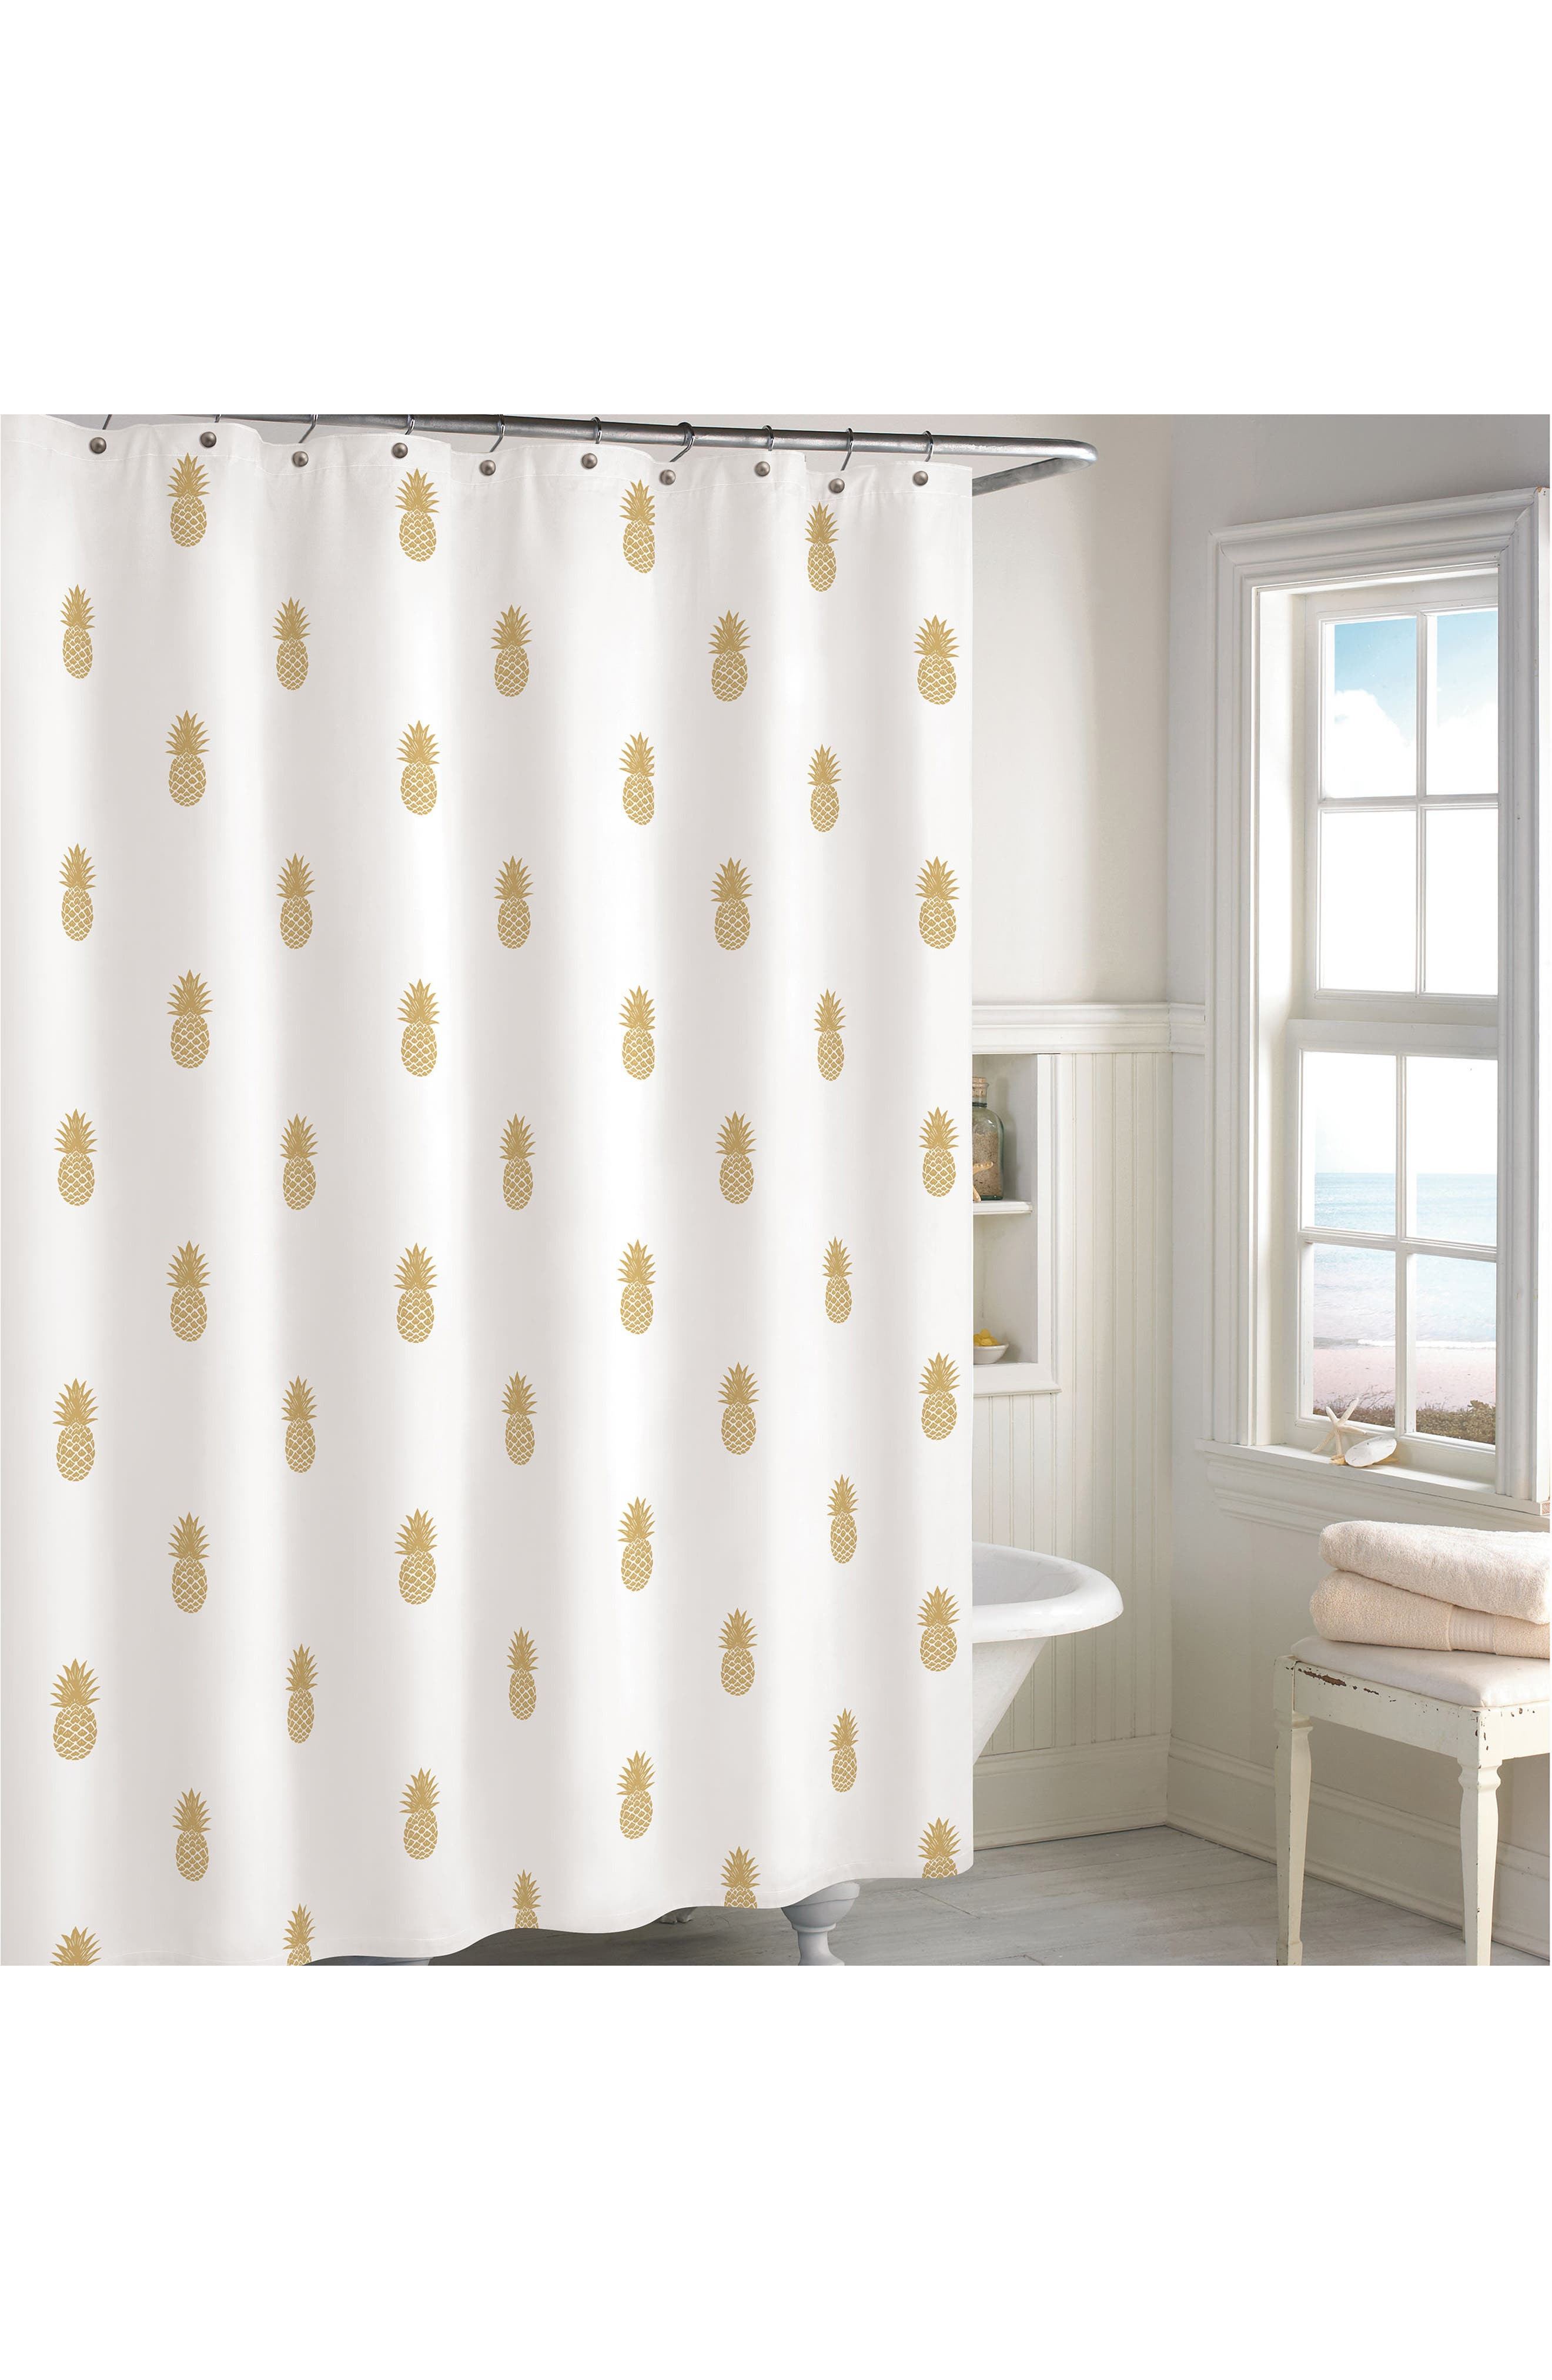 Golden Pineapple Shower Curtain,                             Main thumbnail 1, color,                             710